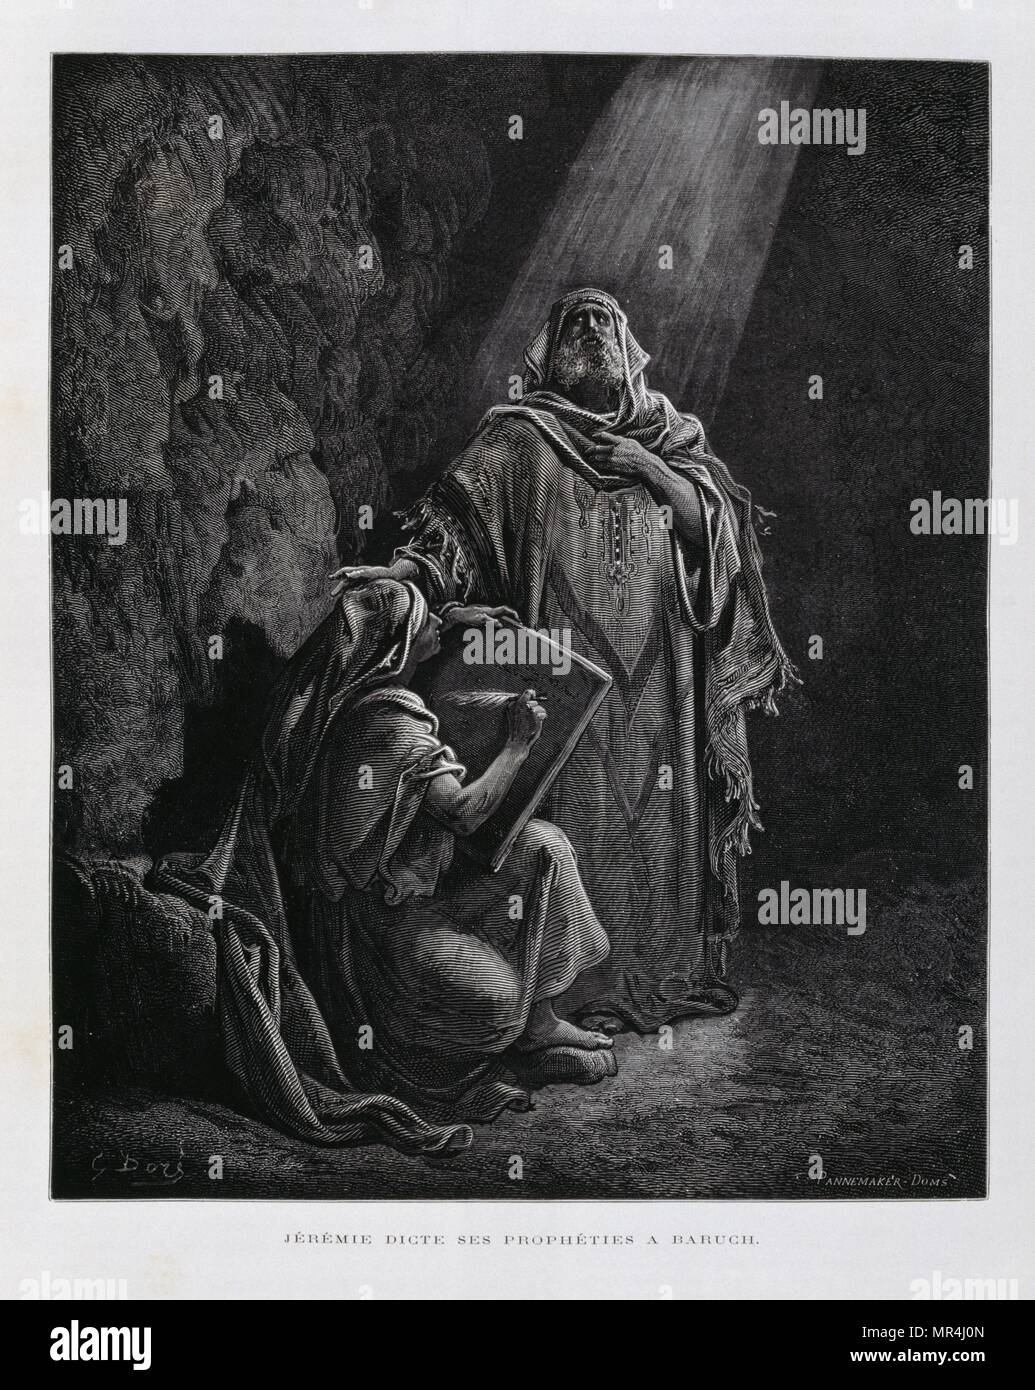 Jeremiah a prophet of the Hebrew Bible (Old Testament), dictates to  Baruch ben Neriah. Engraving by Gustav Dore 1866. According to religious tradition, Jeremiah authored the Book of Jeremiah, the Books of Kings and the Book of Lamentations were under the editorship of Baruch ben Neriah, his scribe and disciple. - Stock Image